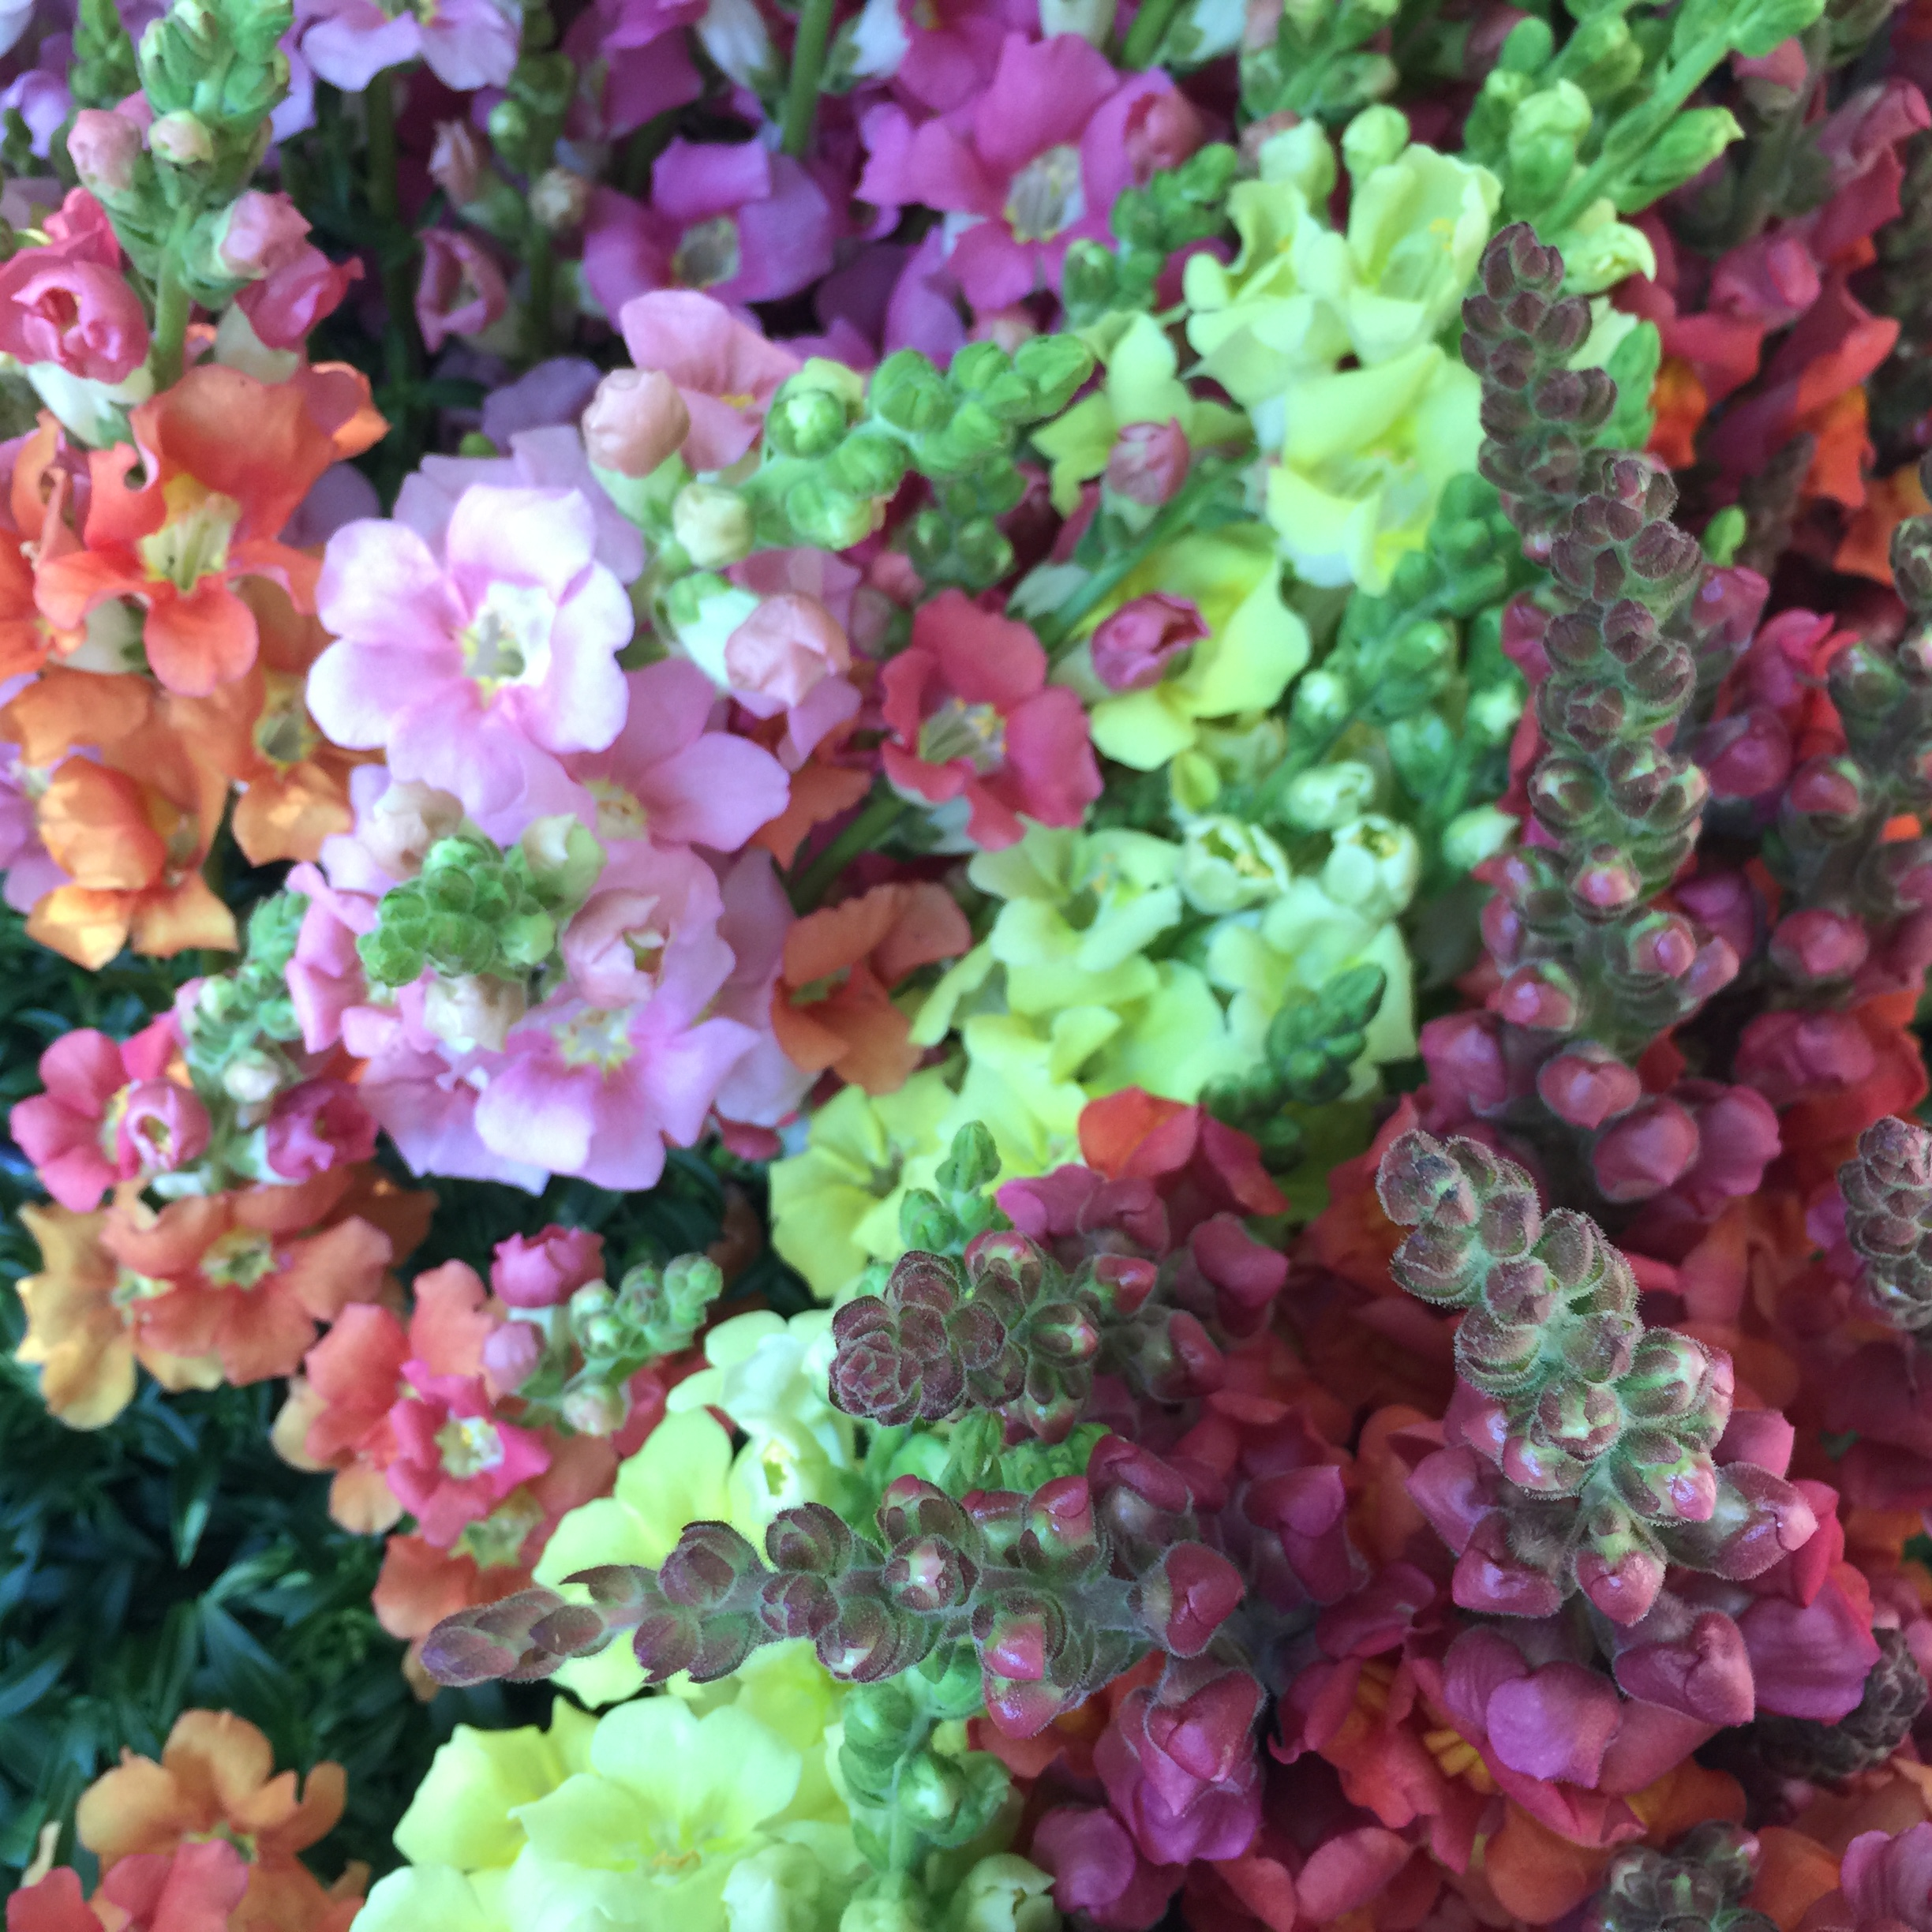 Snapdragons - Favorite varieties: Chantilly + Madame Butterfly series